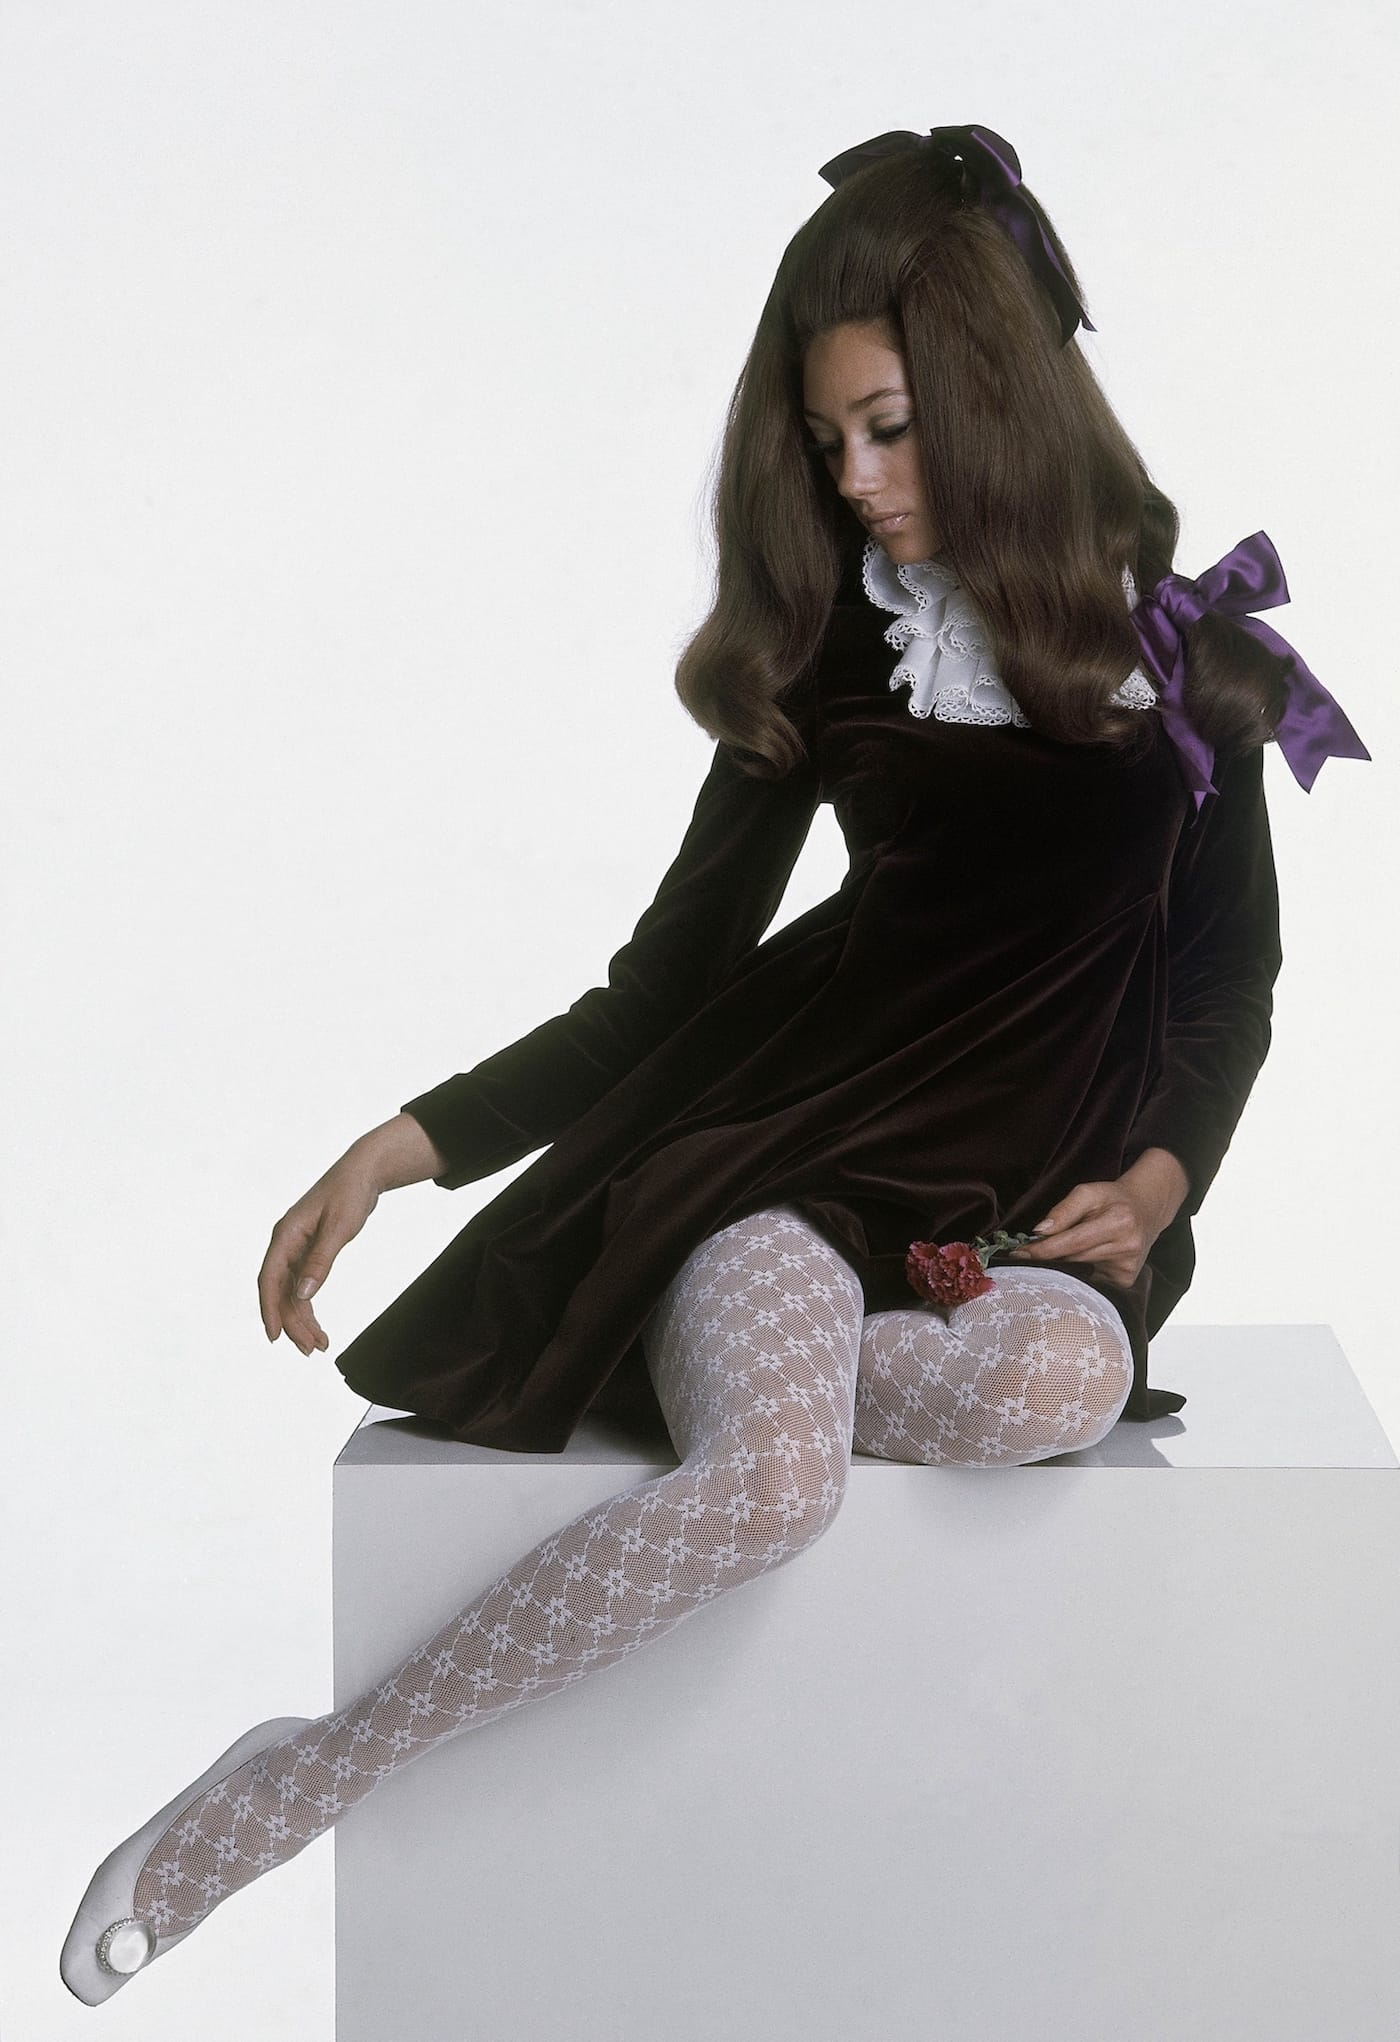 Marisa Berenson per Vogue, 1967 (GettyImages)